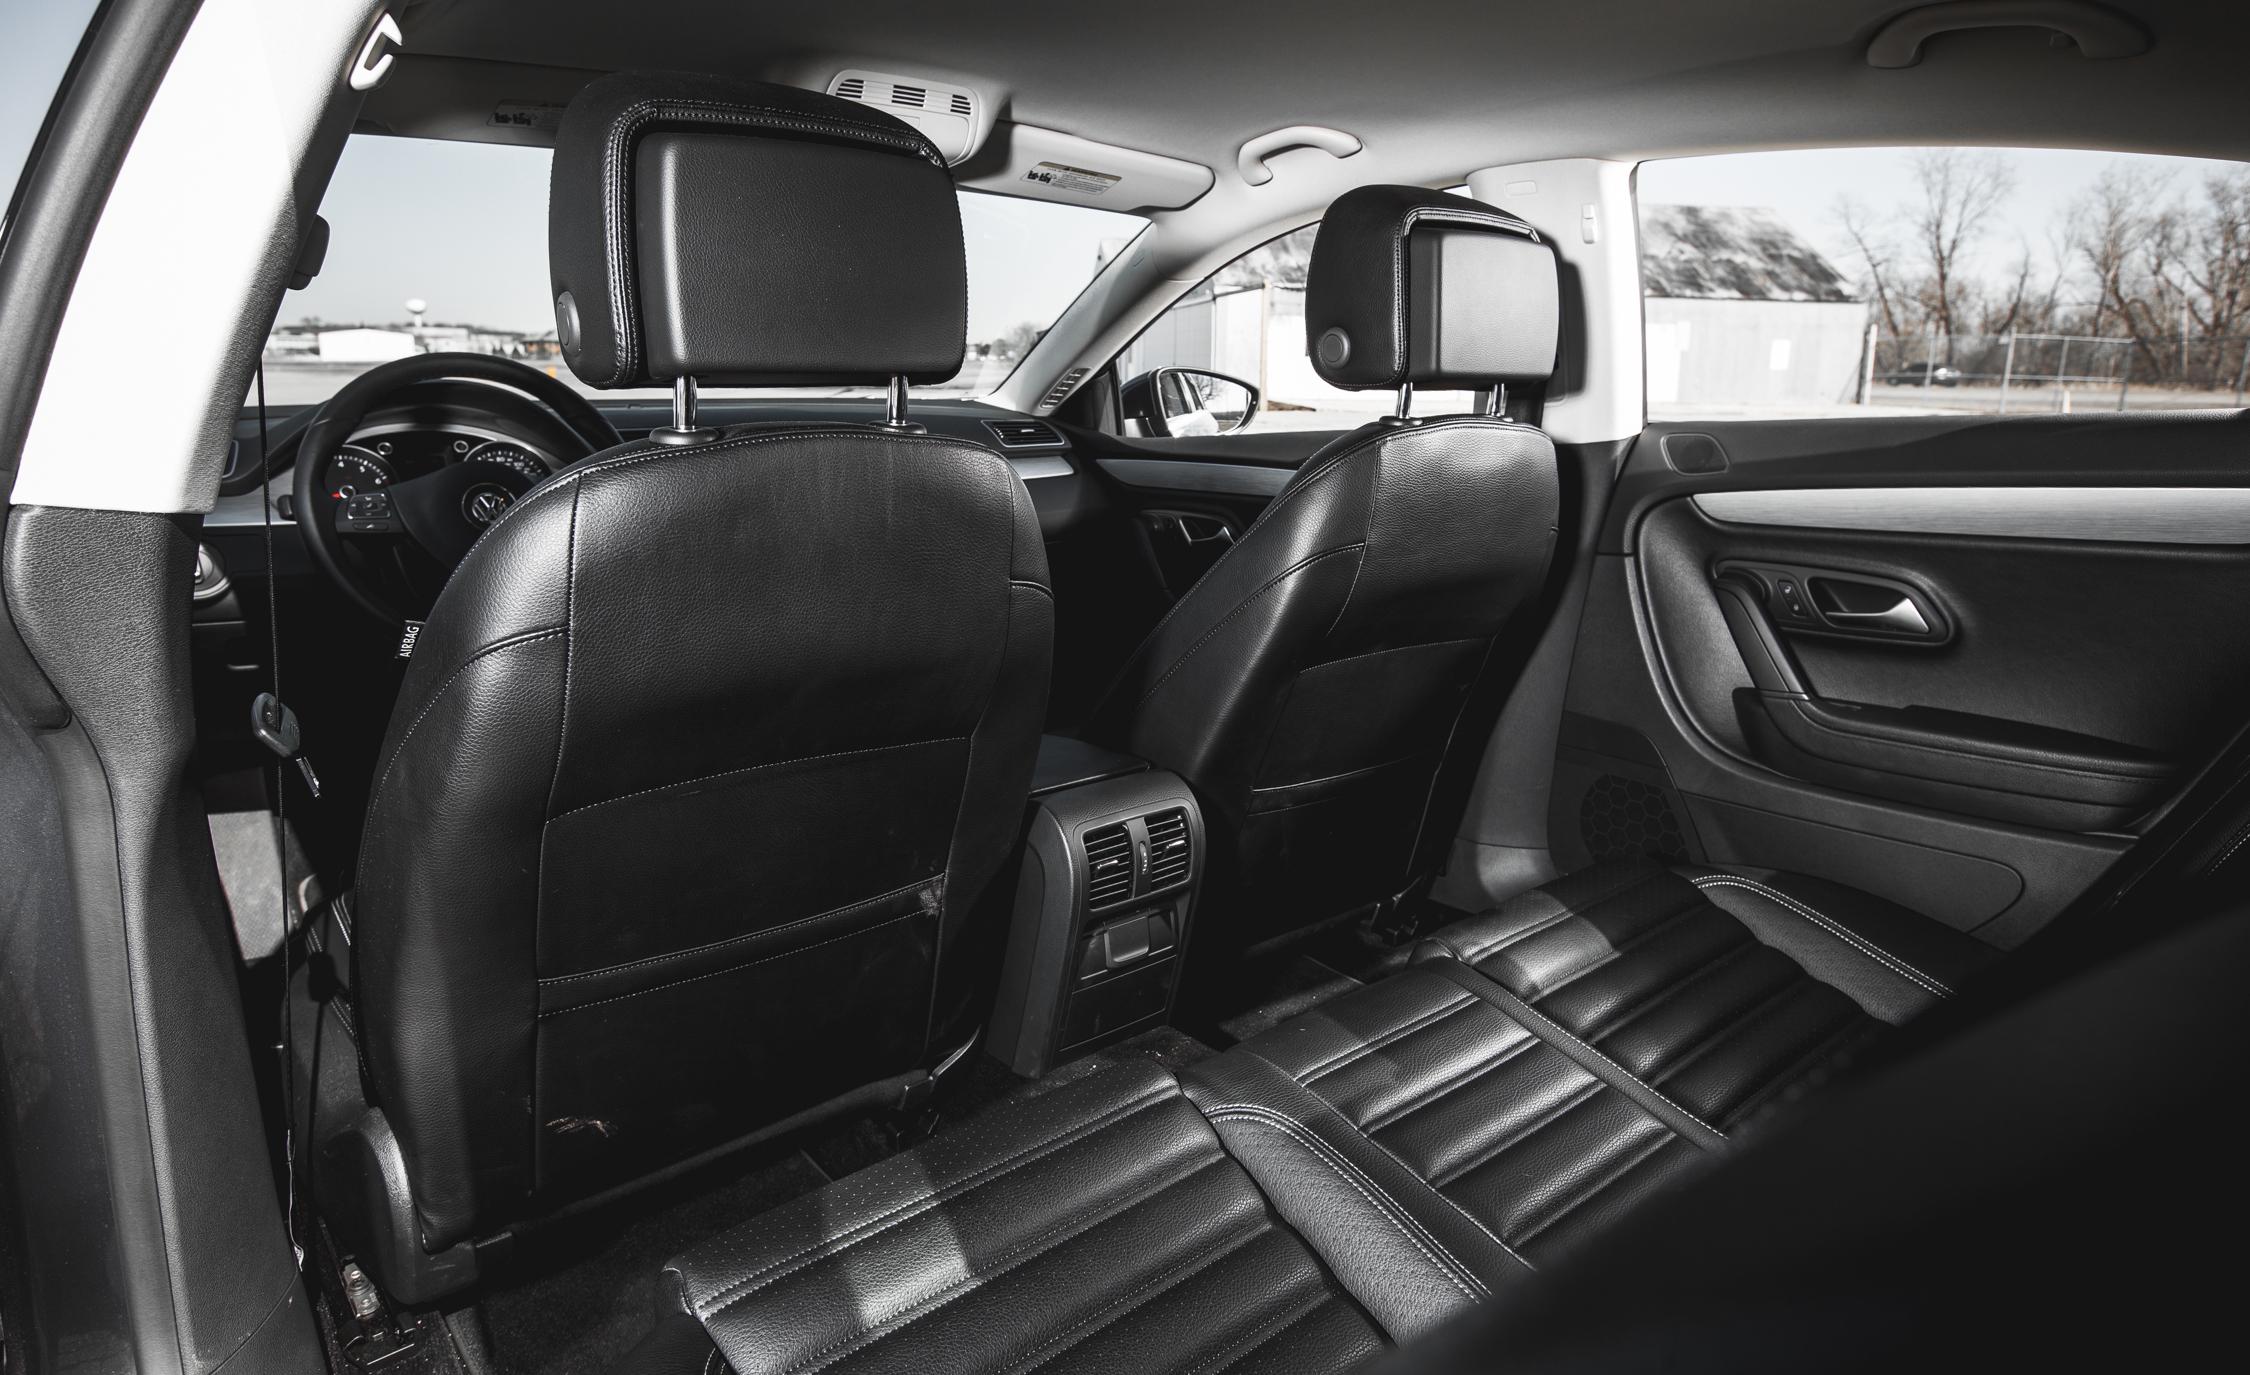 2015 Volkswagen CC Sport Interior (Photo 11 of 15)